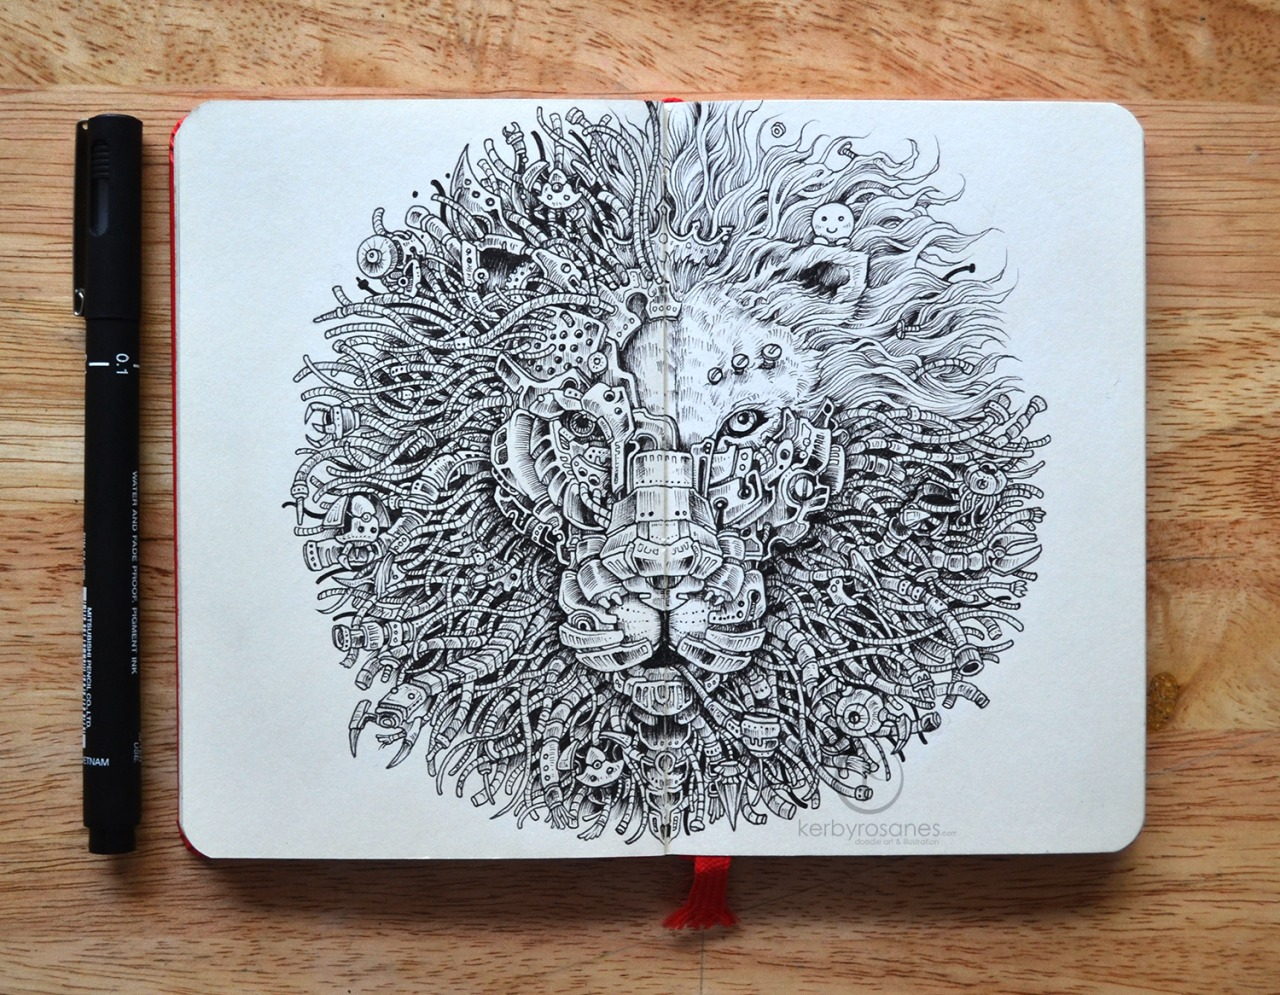 1280x995 Most People Doodle When They'Re Bored, But What This Artist Does